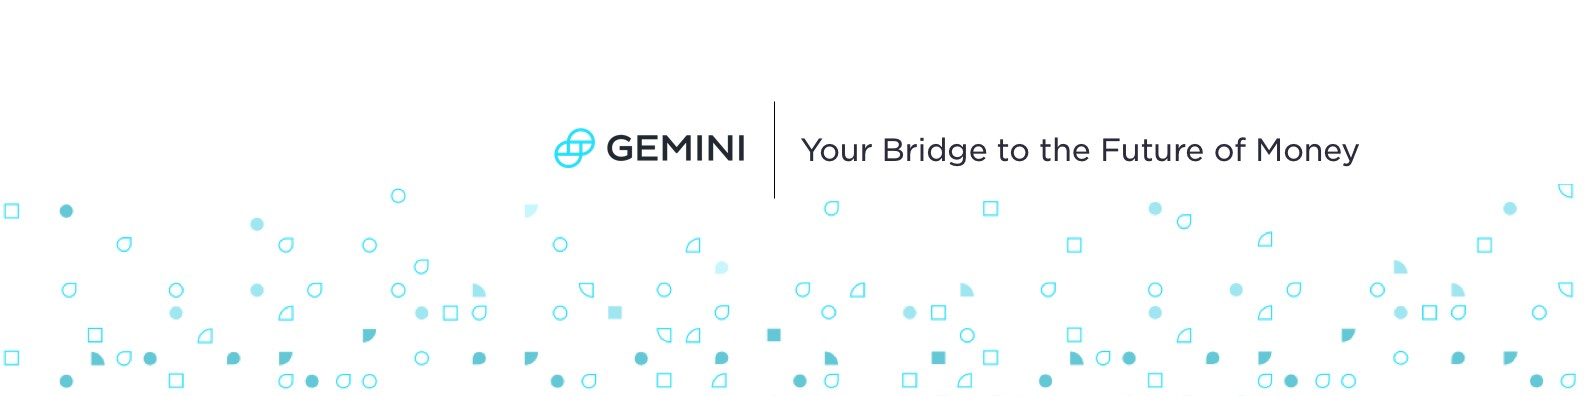 gemini support email